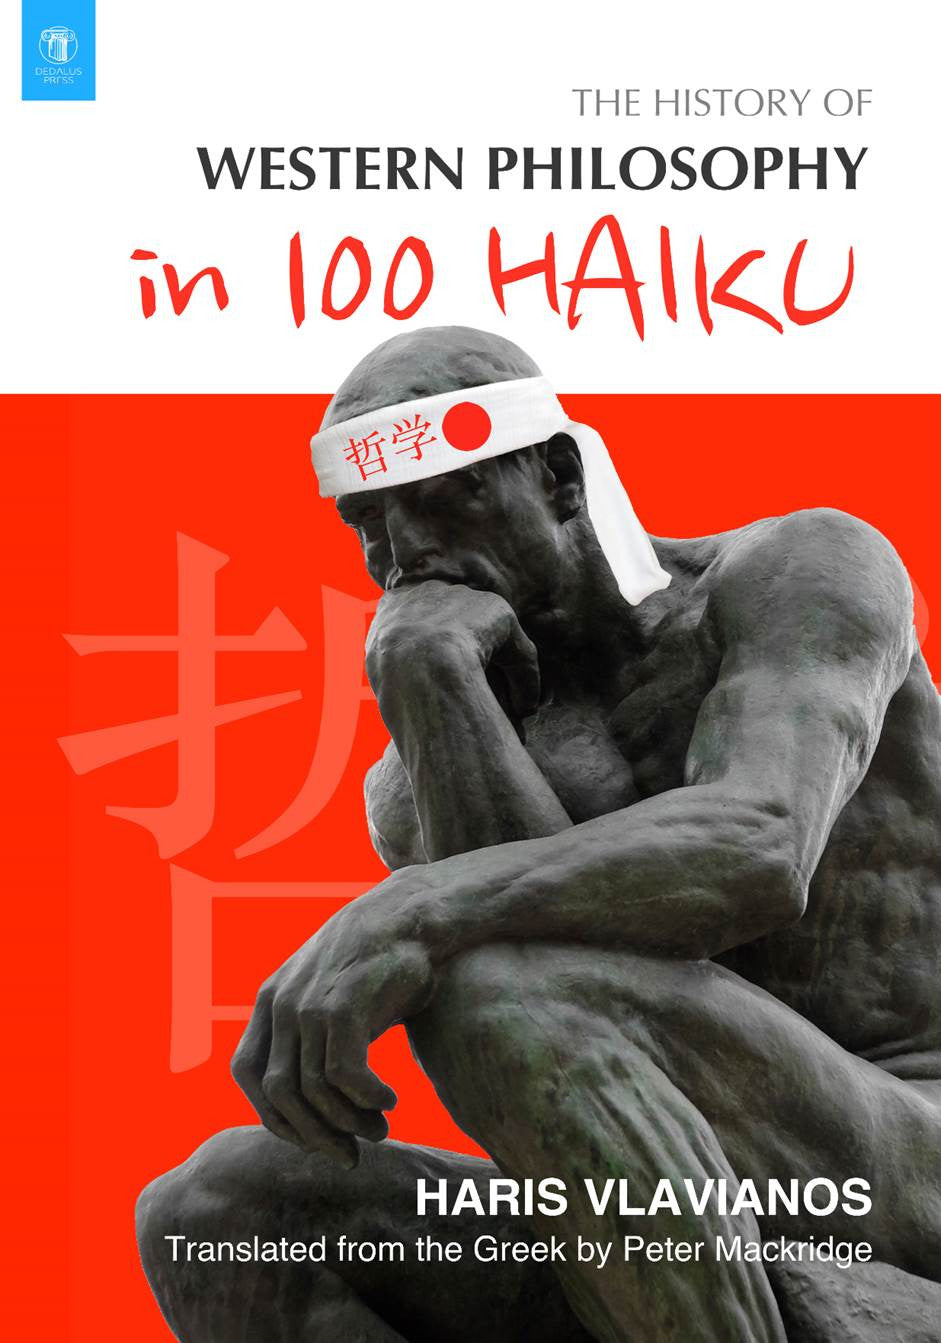 The History of Western Philosophy in 100 Haiku